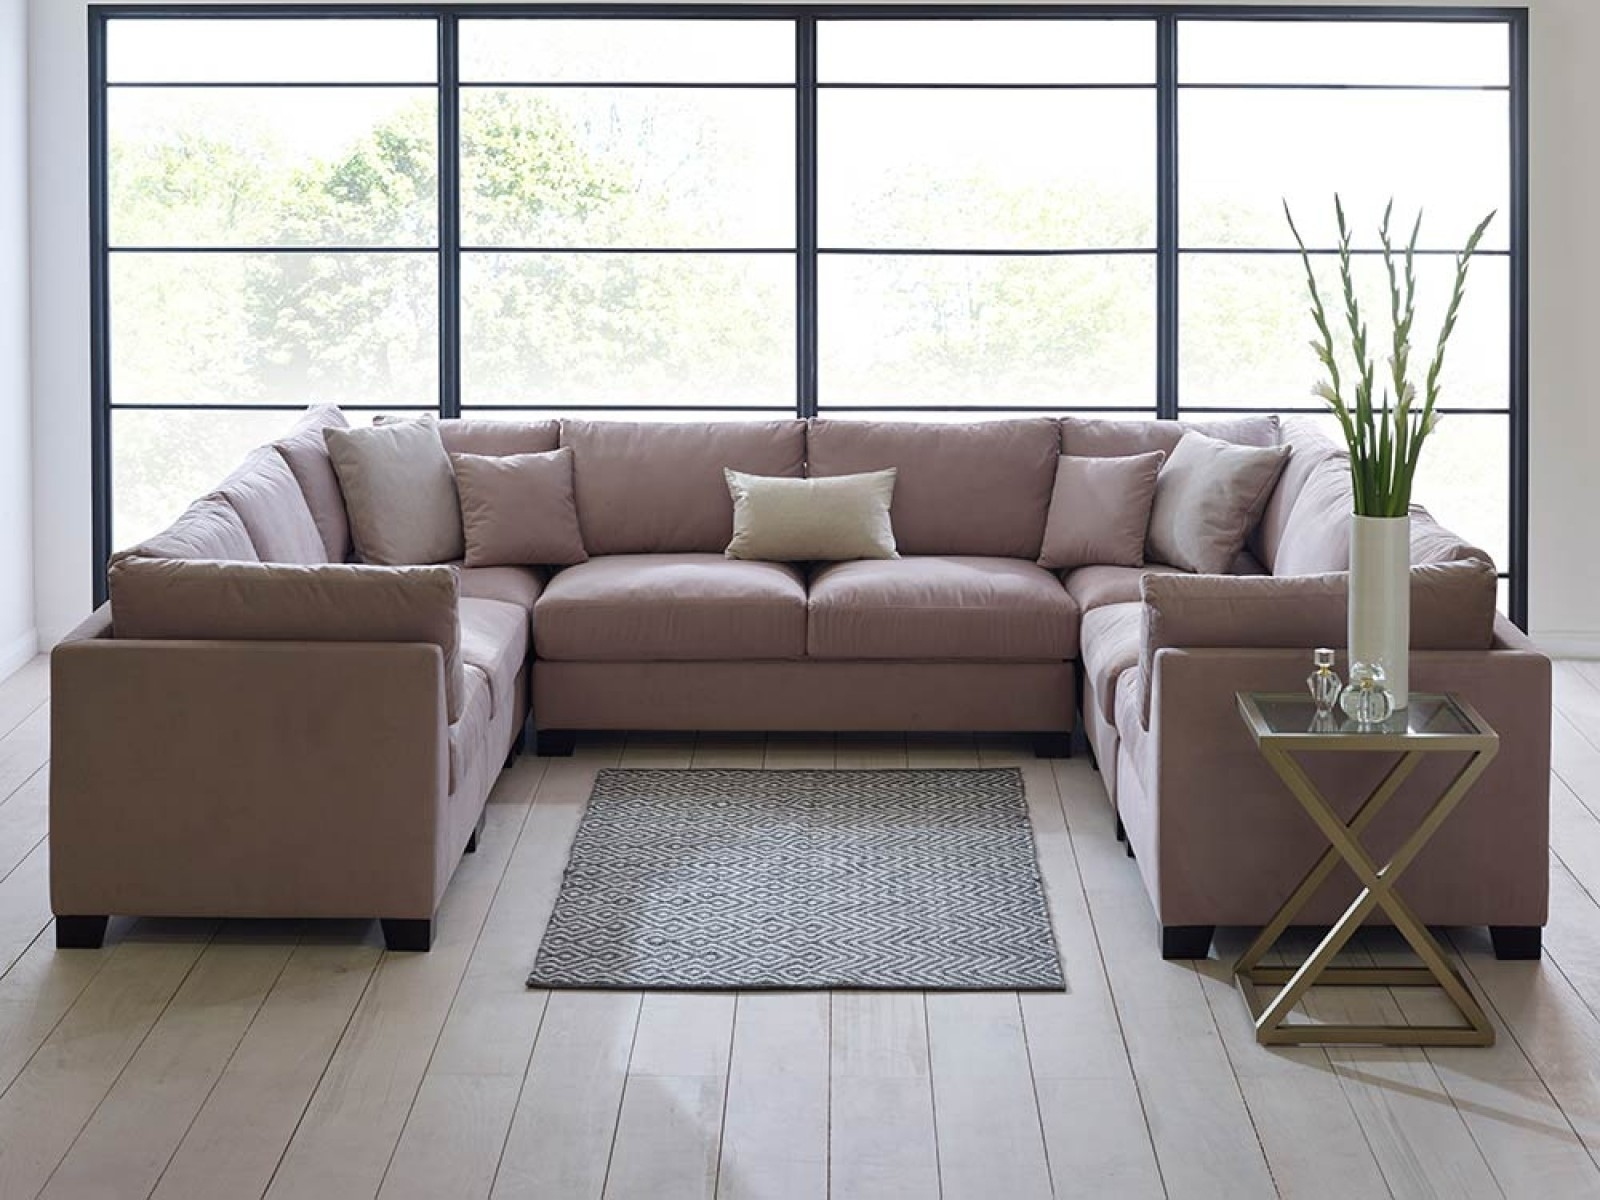 Best And Newest U Shaped Sofa – Google Search (View 5 of 15)